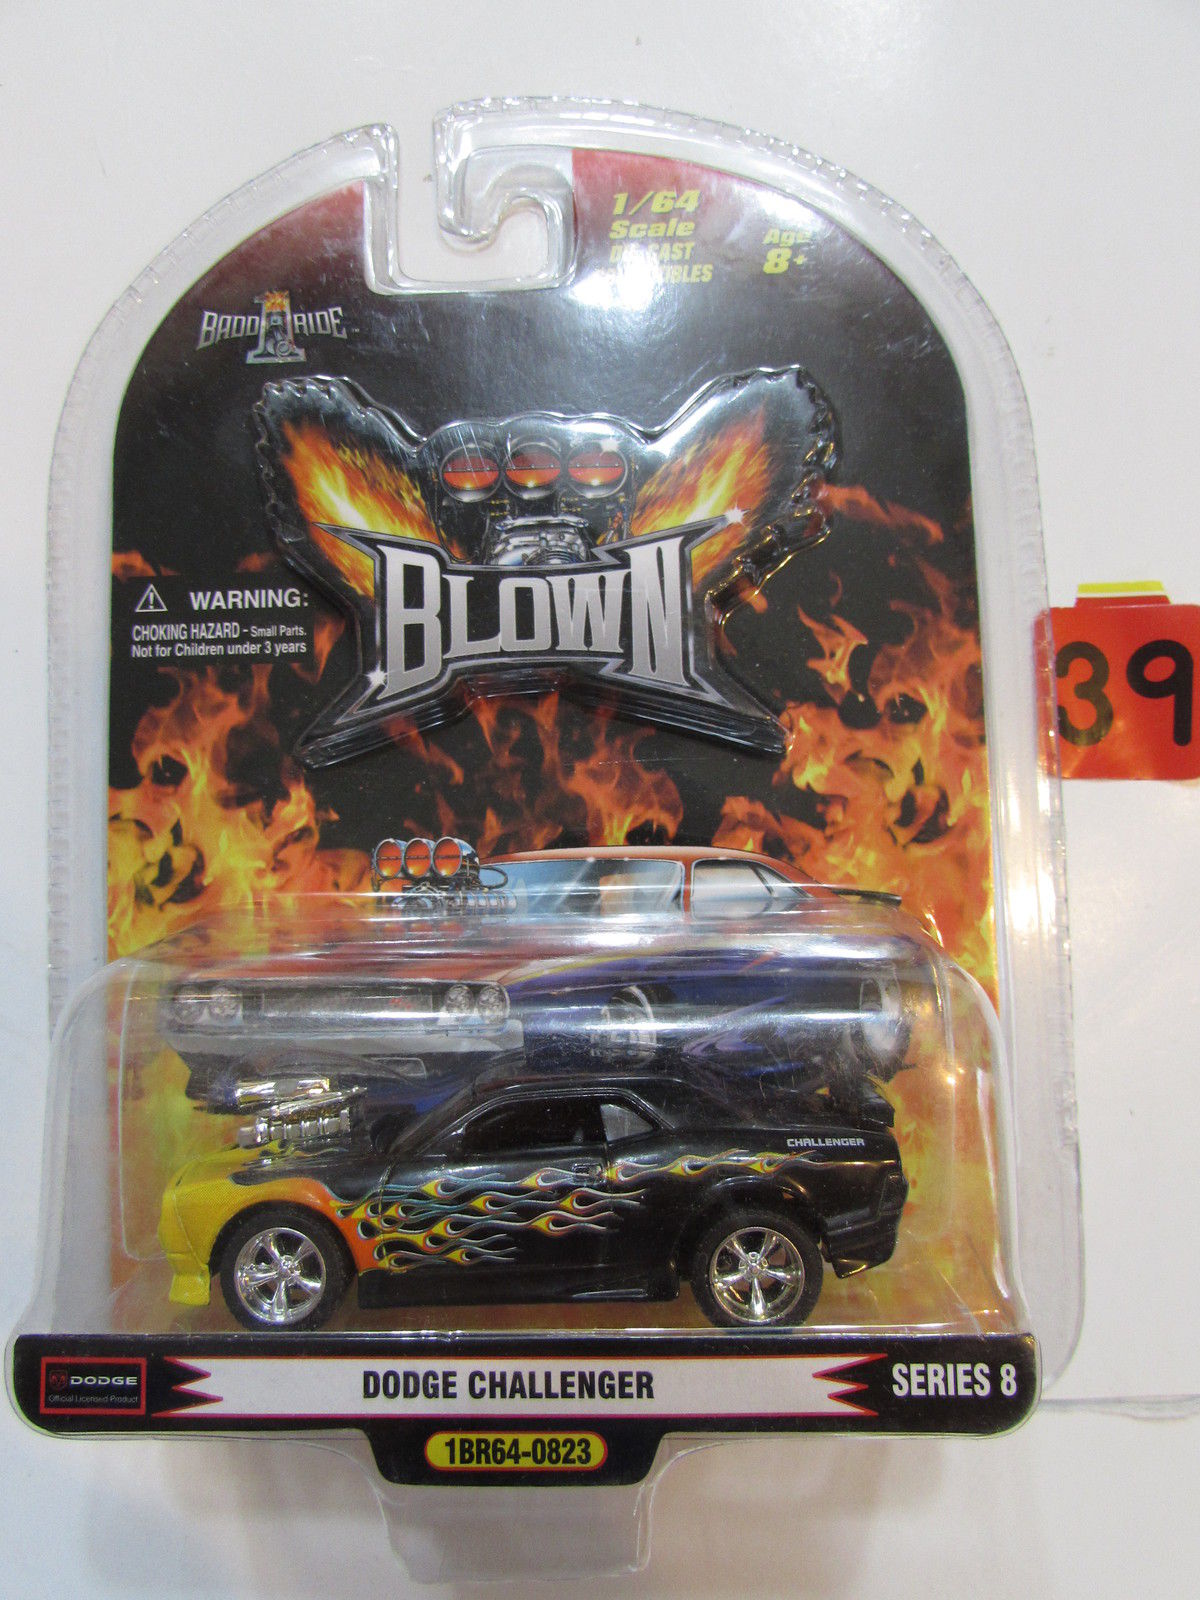 1 BADD RIDE BLOWN DODGE CHALLENGER SERIES 8 SCALE 1:64